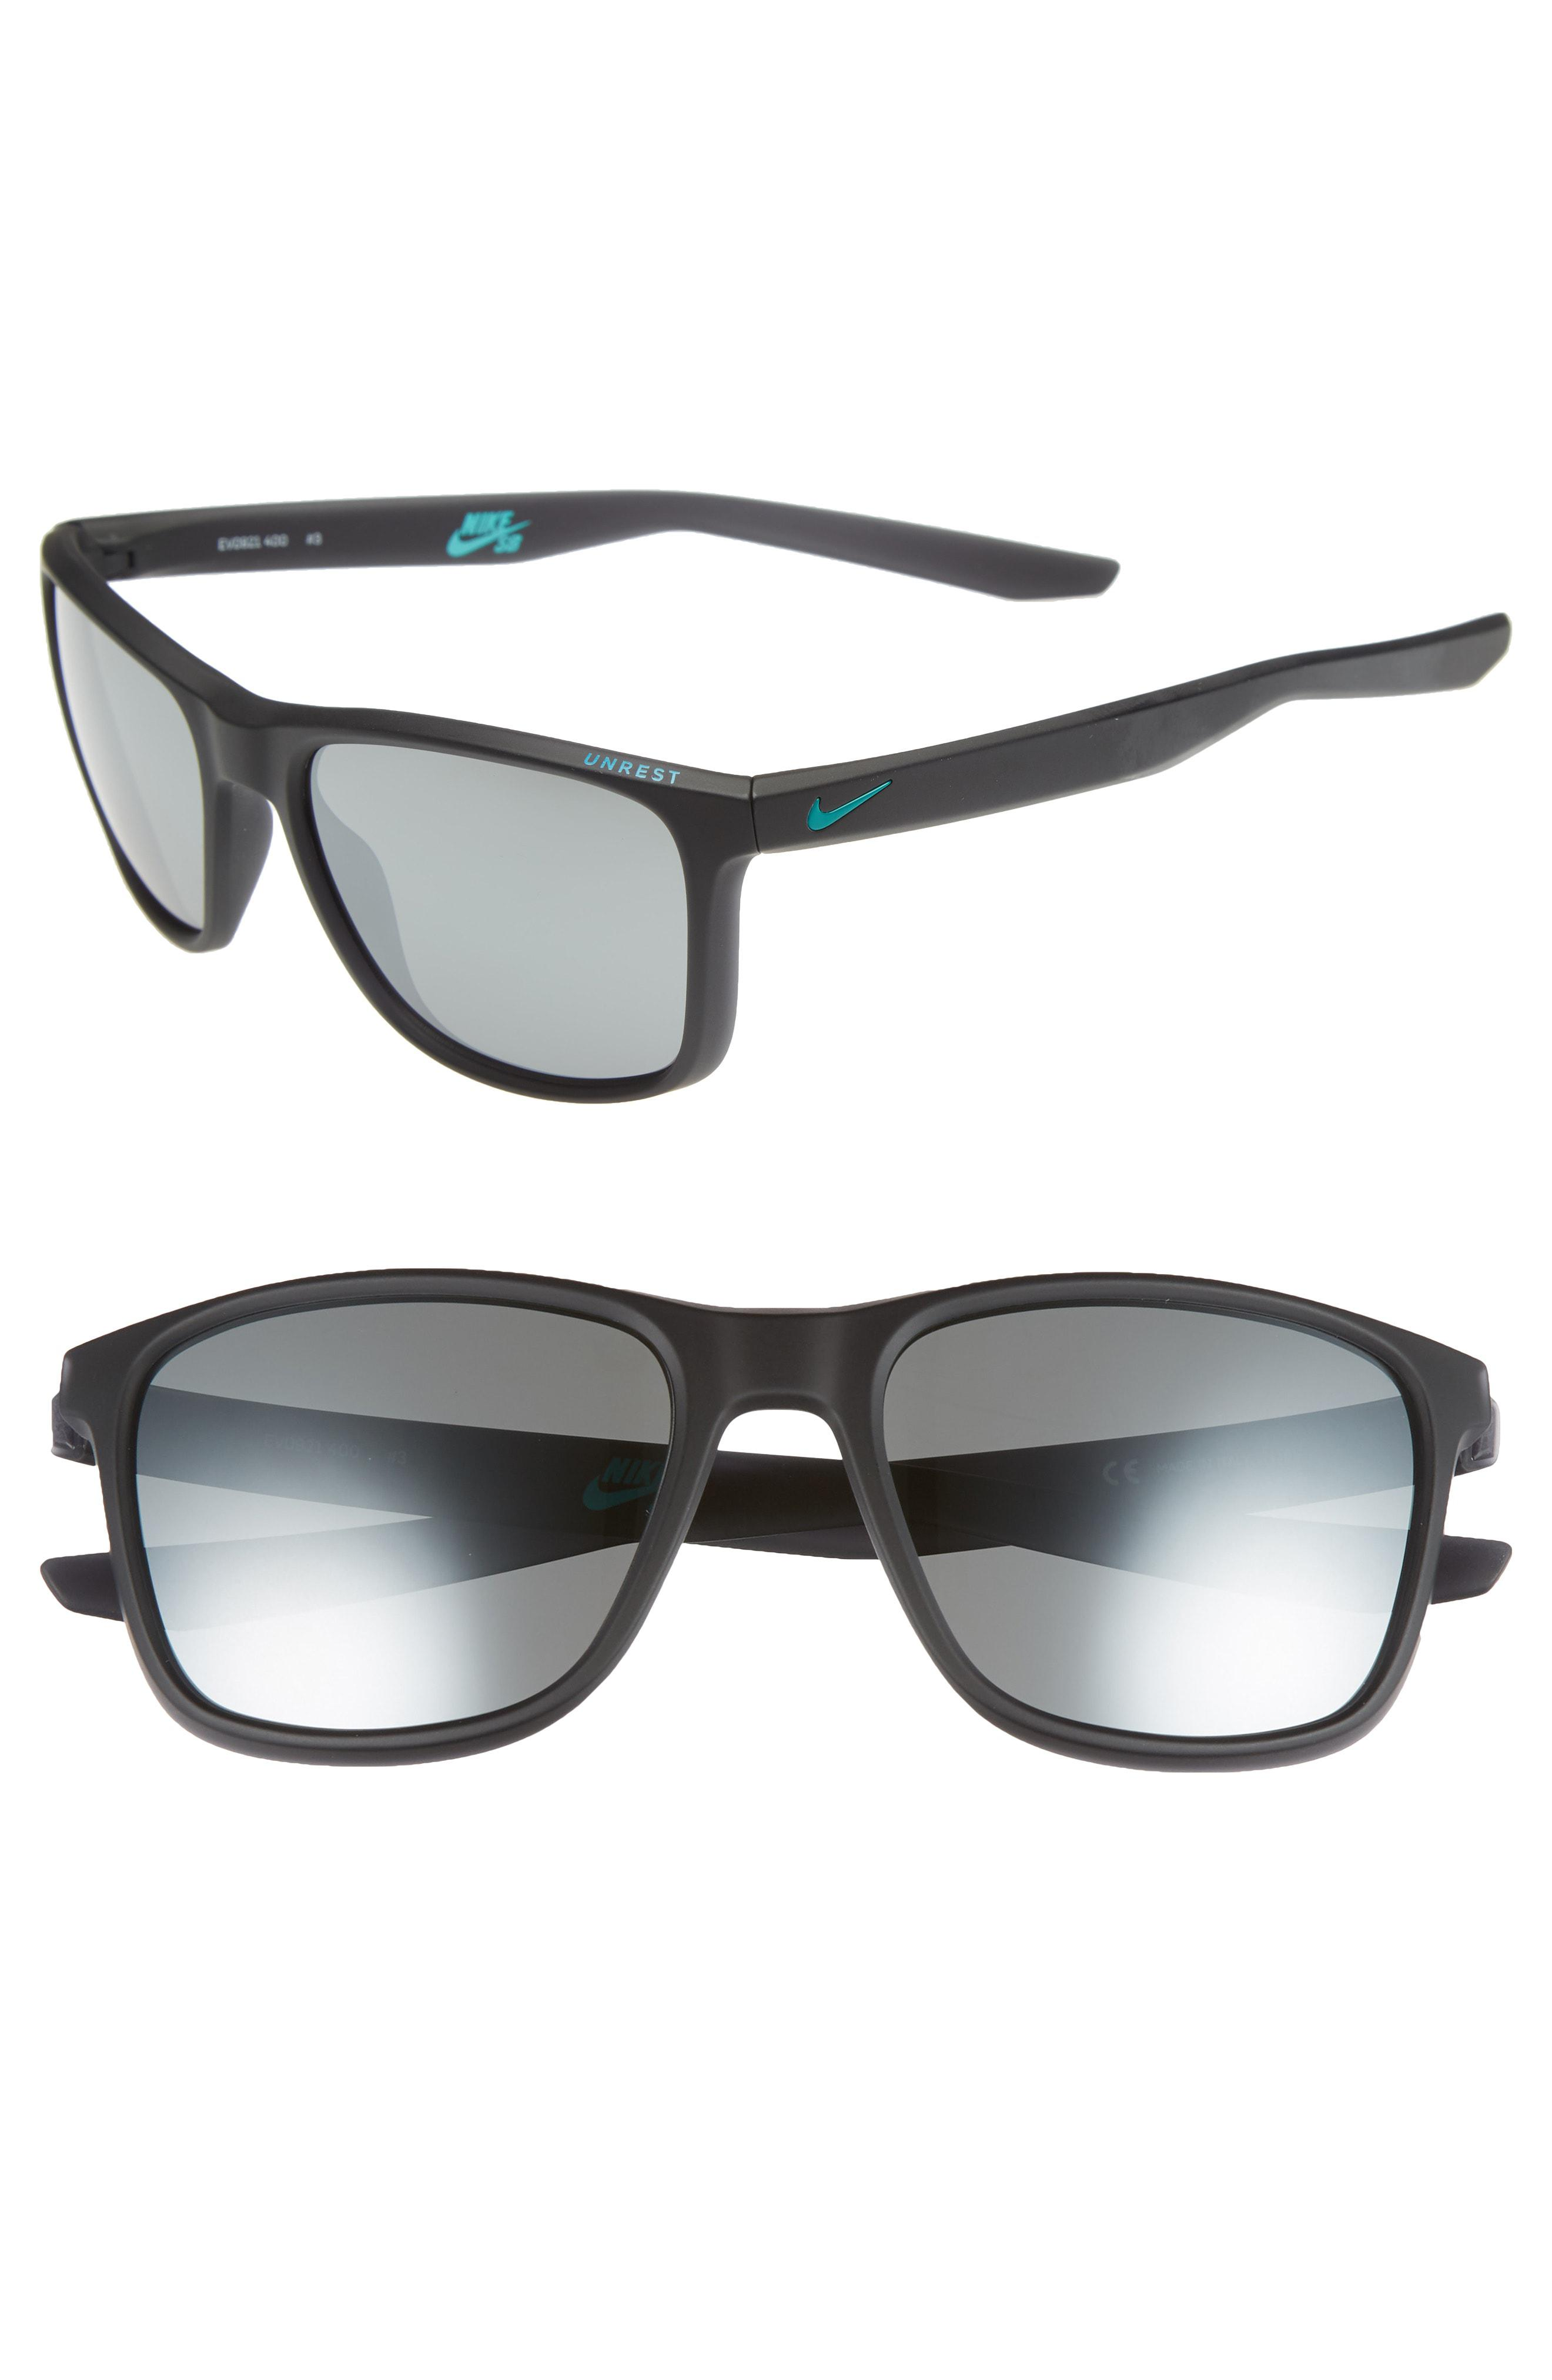 Lyst - Nike Unrest 57mm Sunglasses in Gray for Men f6a1a24bfe